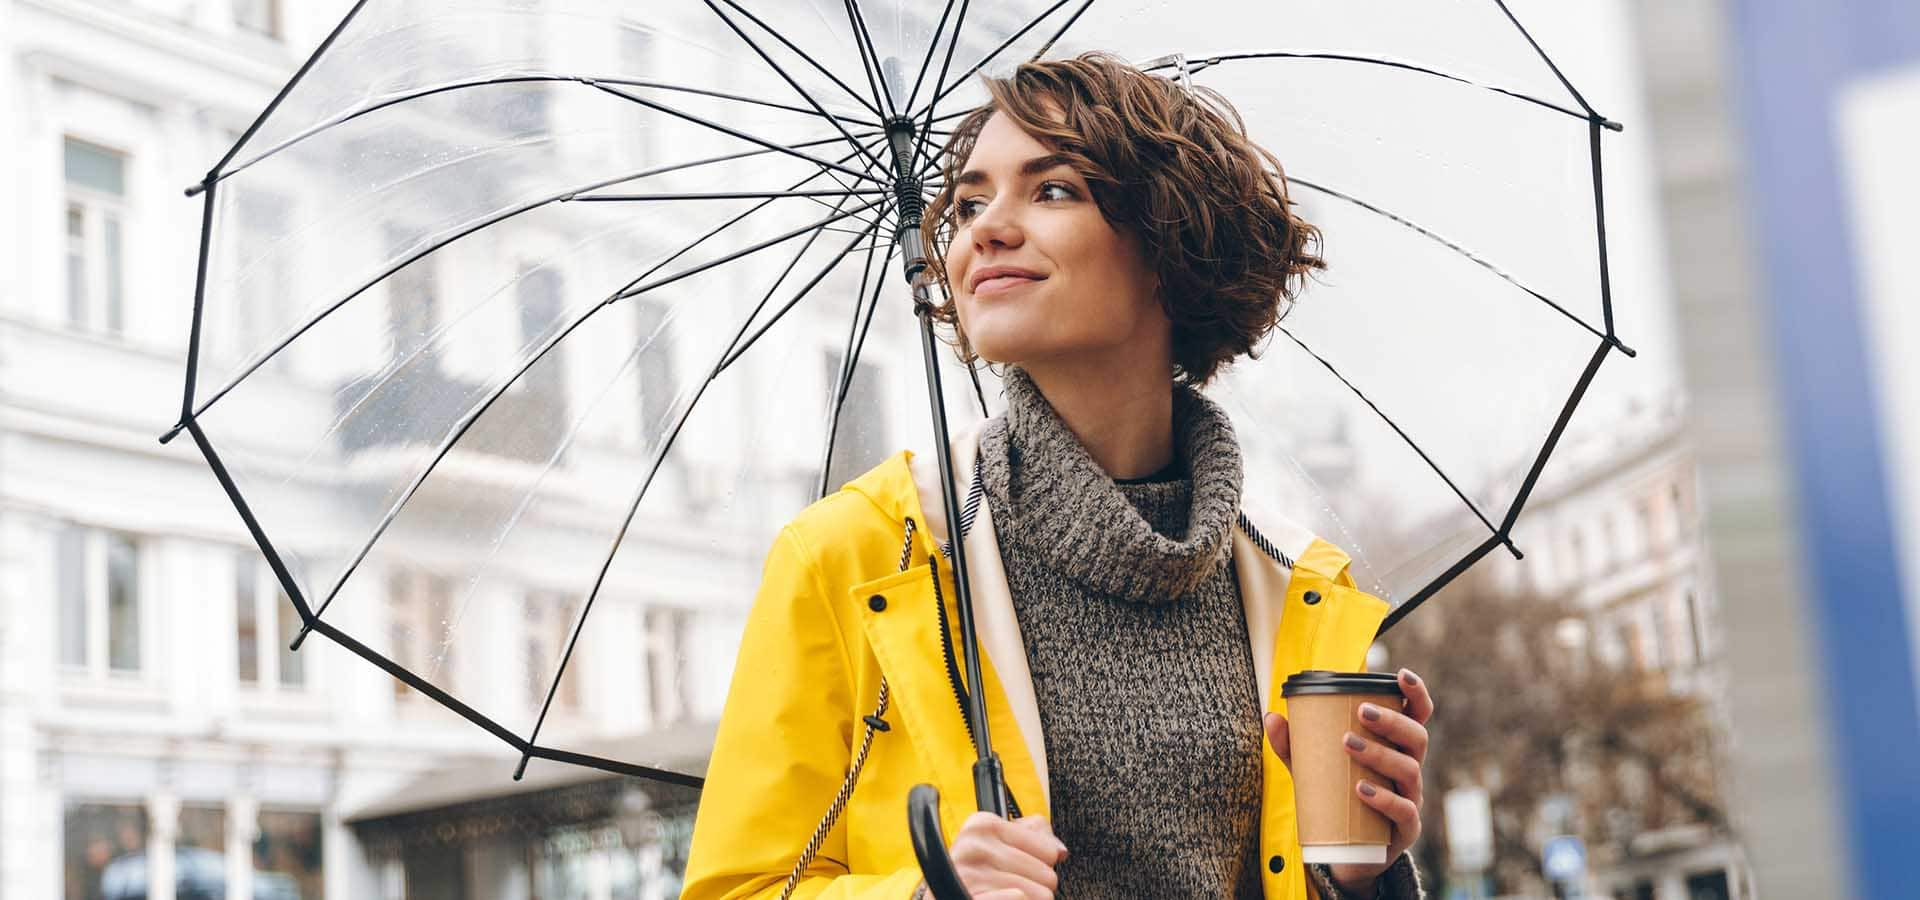 Stylish woman in yellow raincoat walking through urban area under big transparent umbrella, holding takeaway coffee in hand.